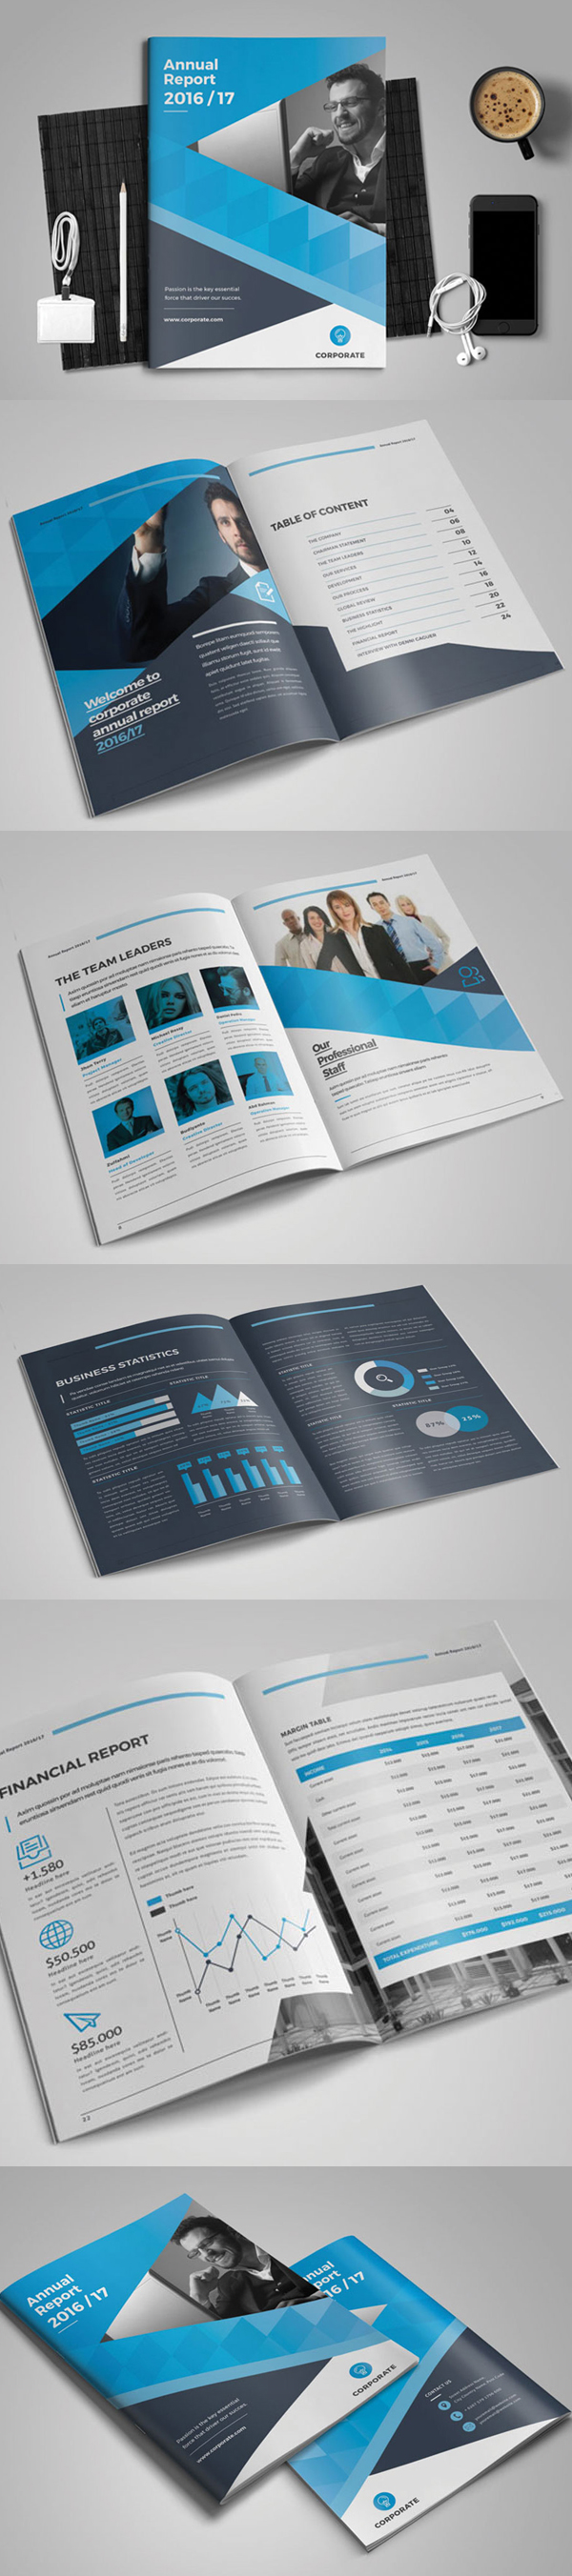 100 Professional Corporate Brochure Templates - 6